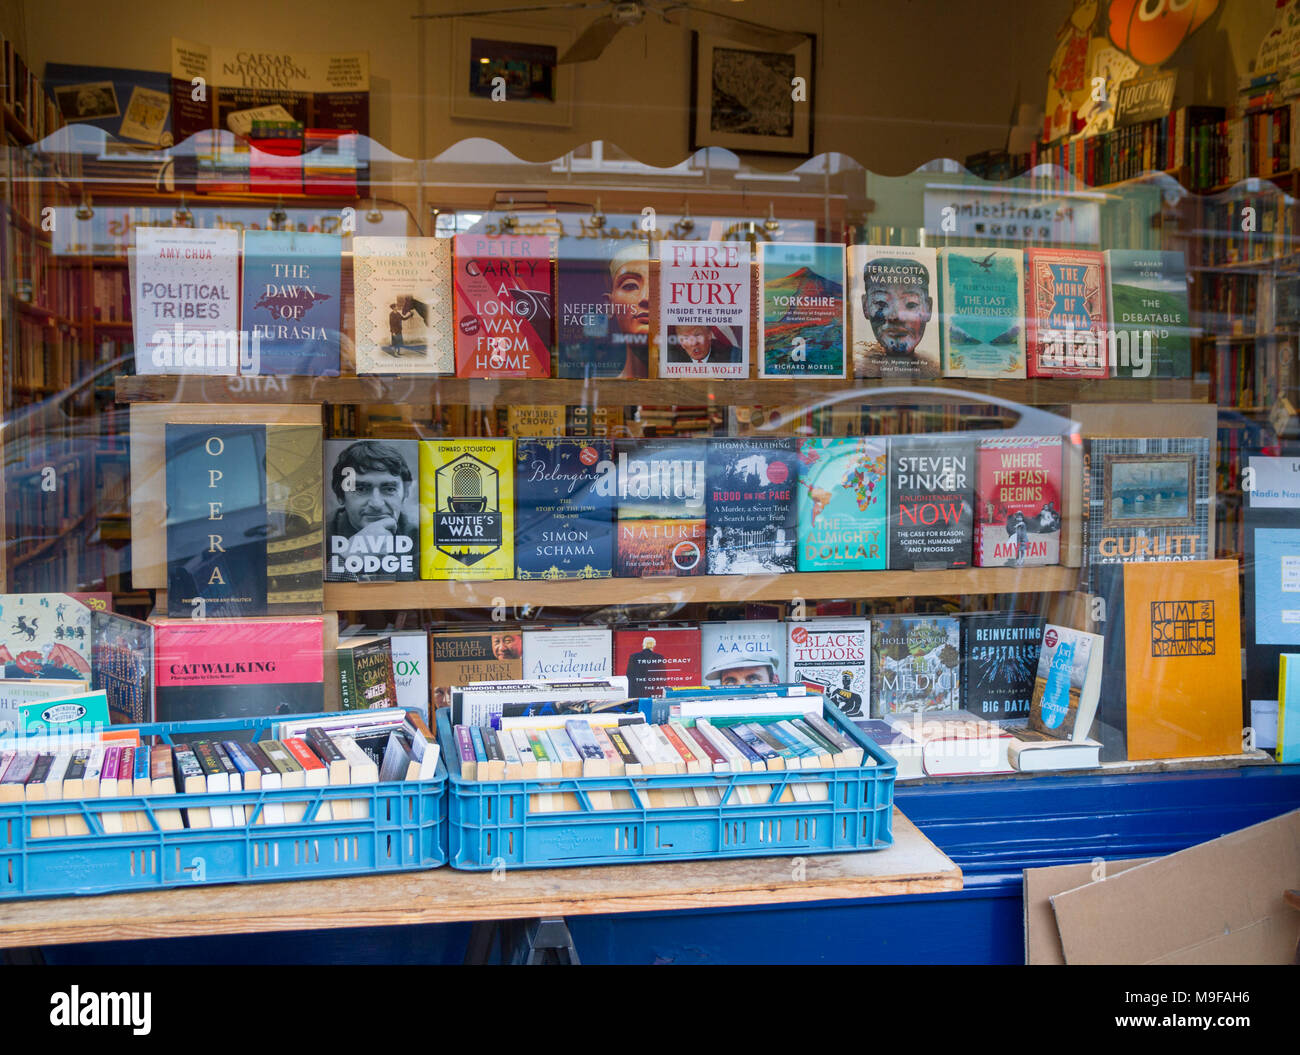 Primrose Hill Books, Old fashioned bookshop, bookstore with crates of secondhand books outside stacked, London UK window book display reading concept - Stock Image